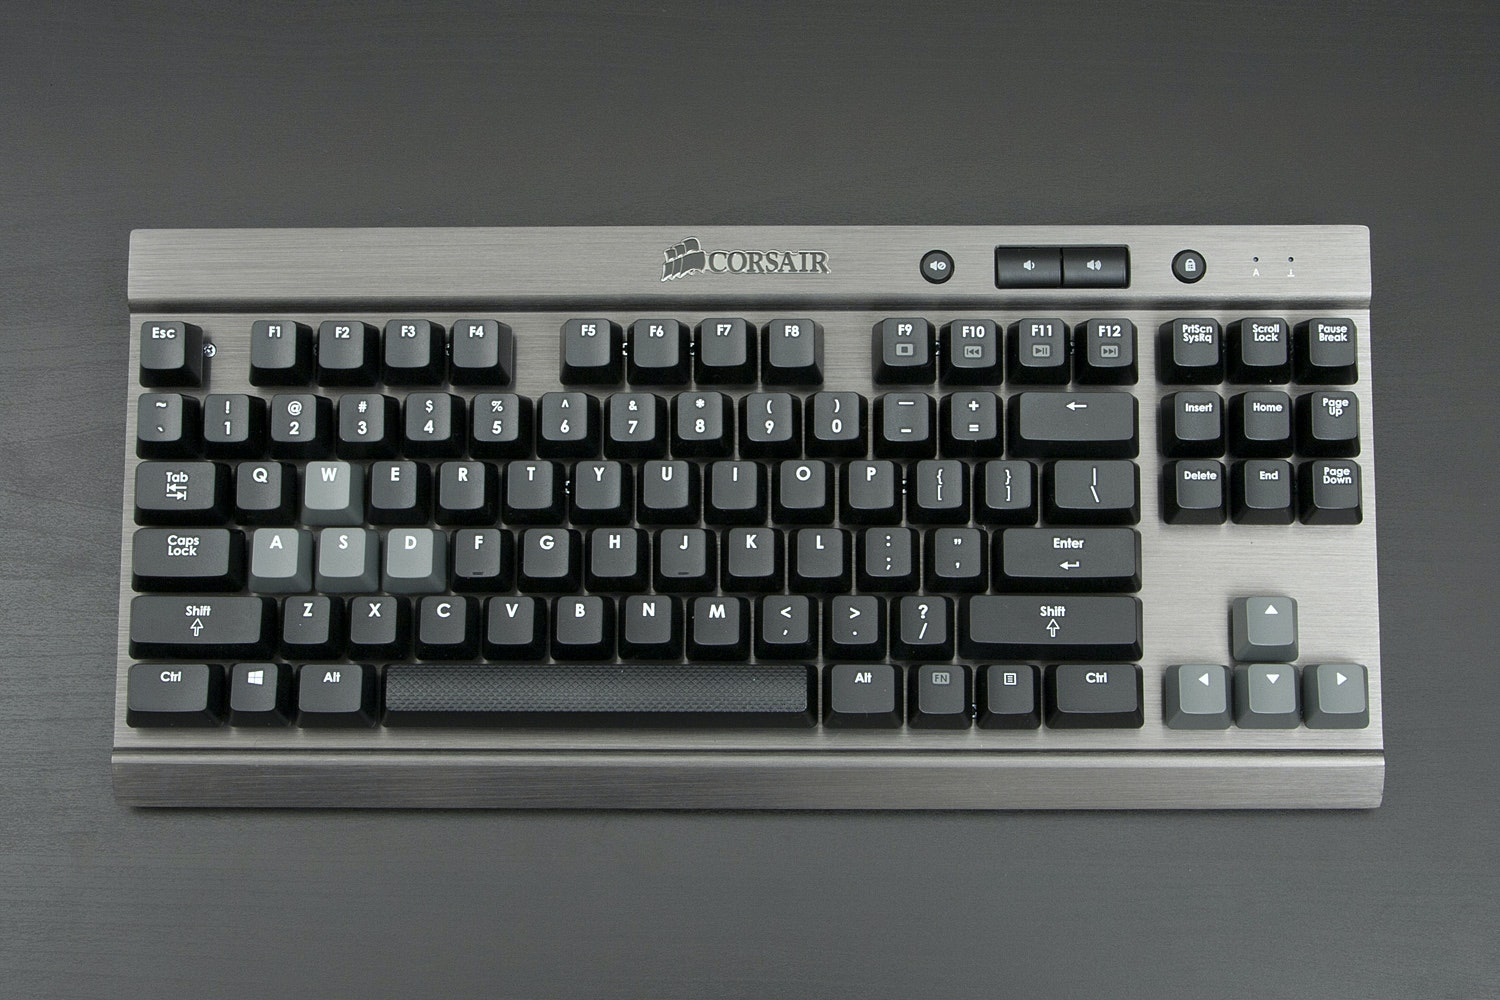 Corsair Vengeance K65 Keyboard